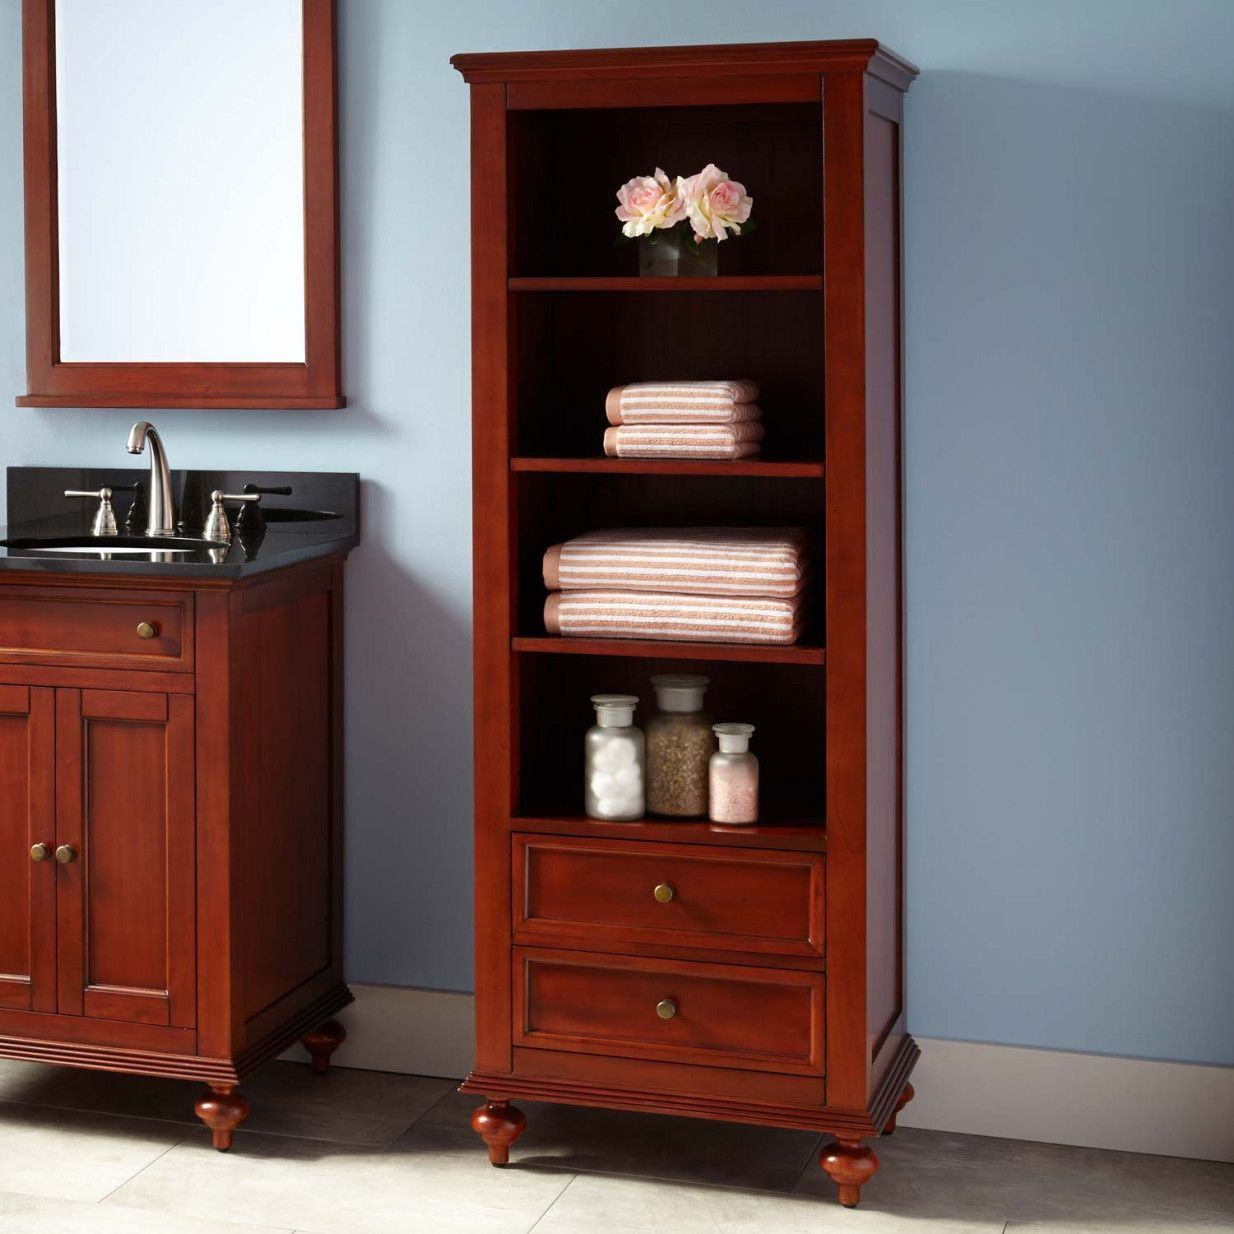 2018 Cherry Bathroom Storage Cabinet Interior Paint Color Schemes Check More At Http